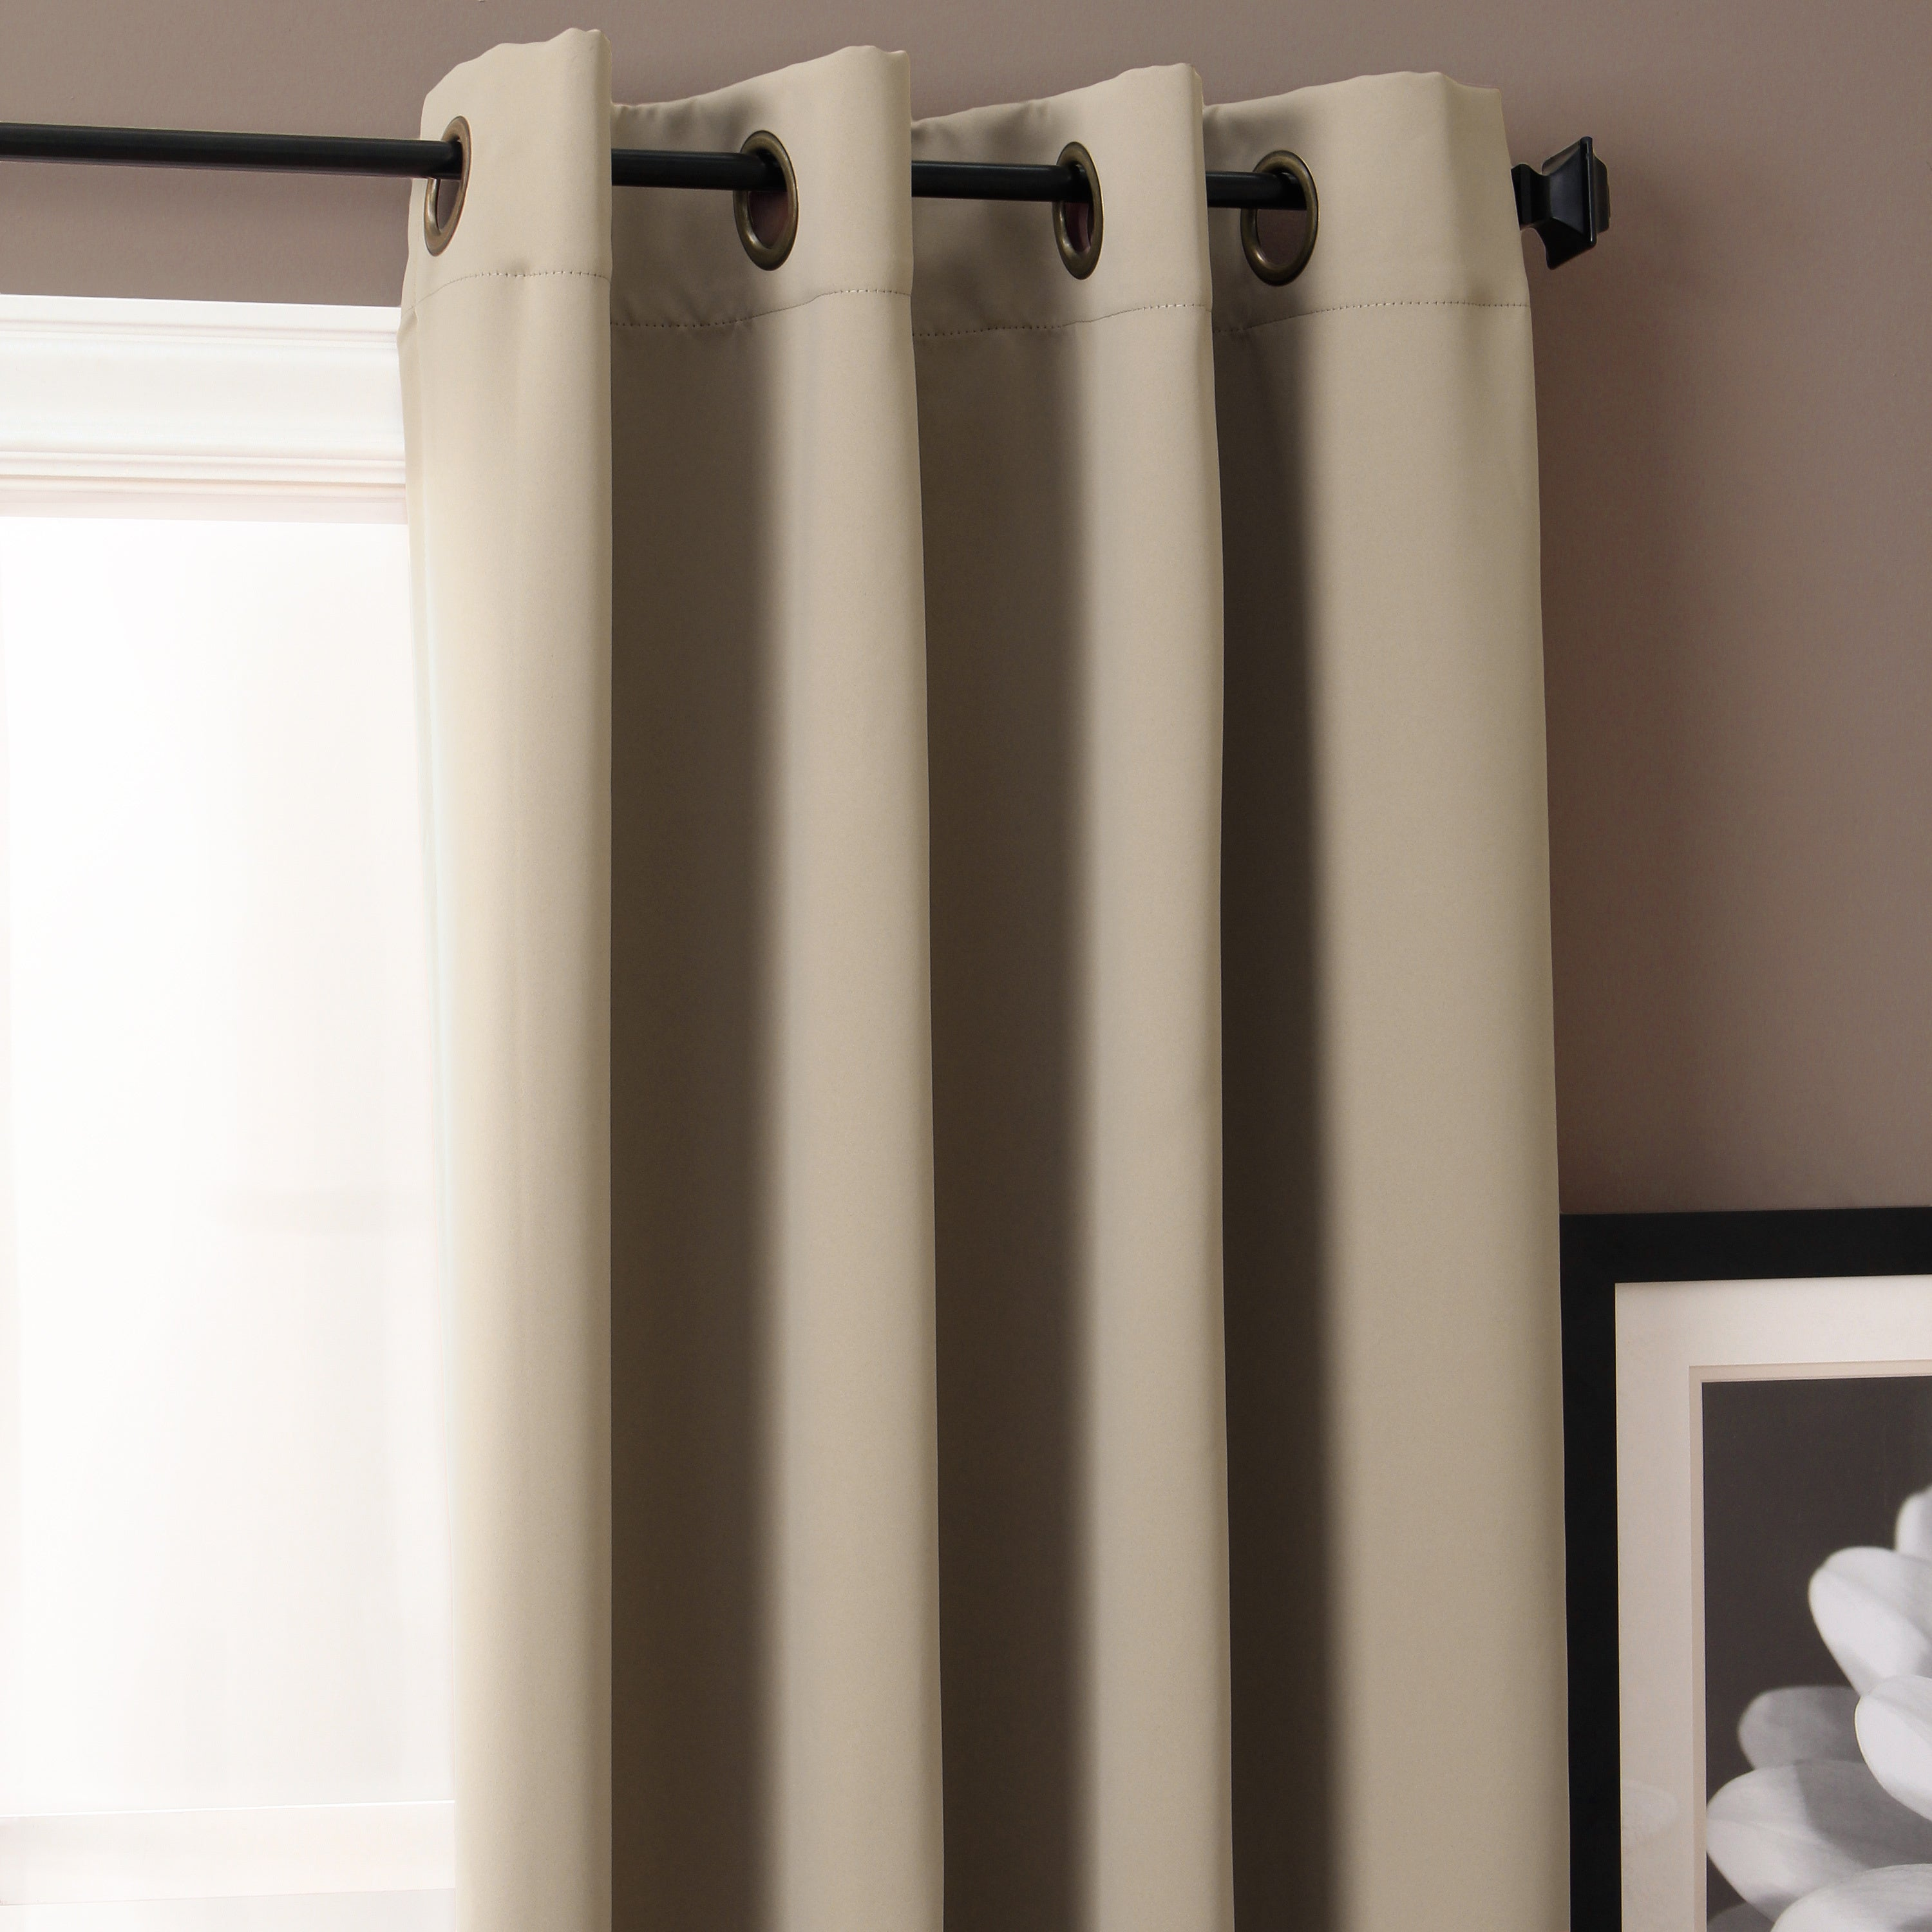 Best Of Curtains to Keep Heat Out